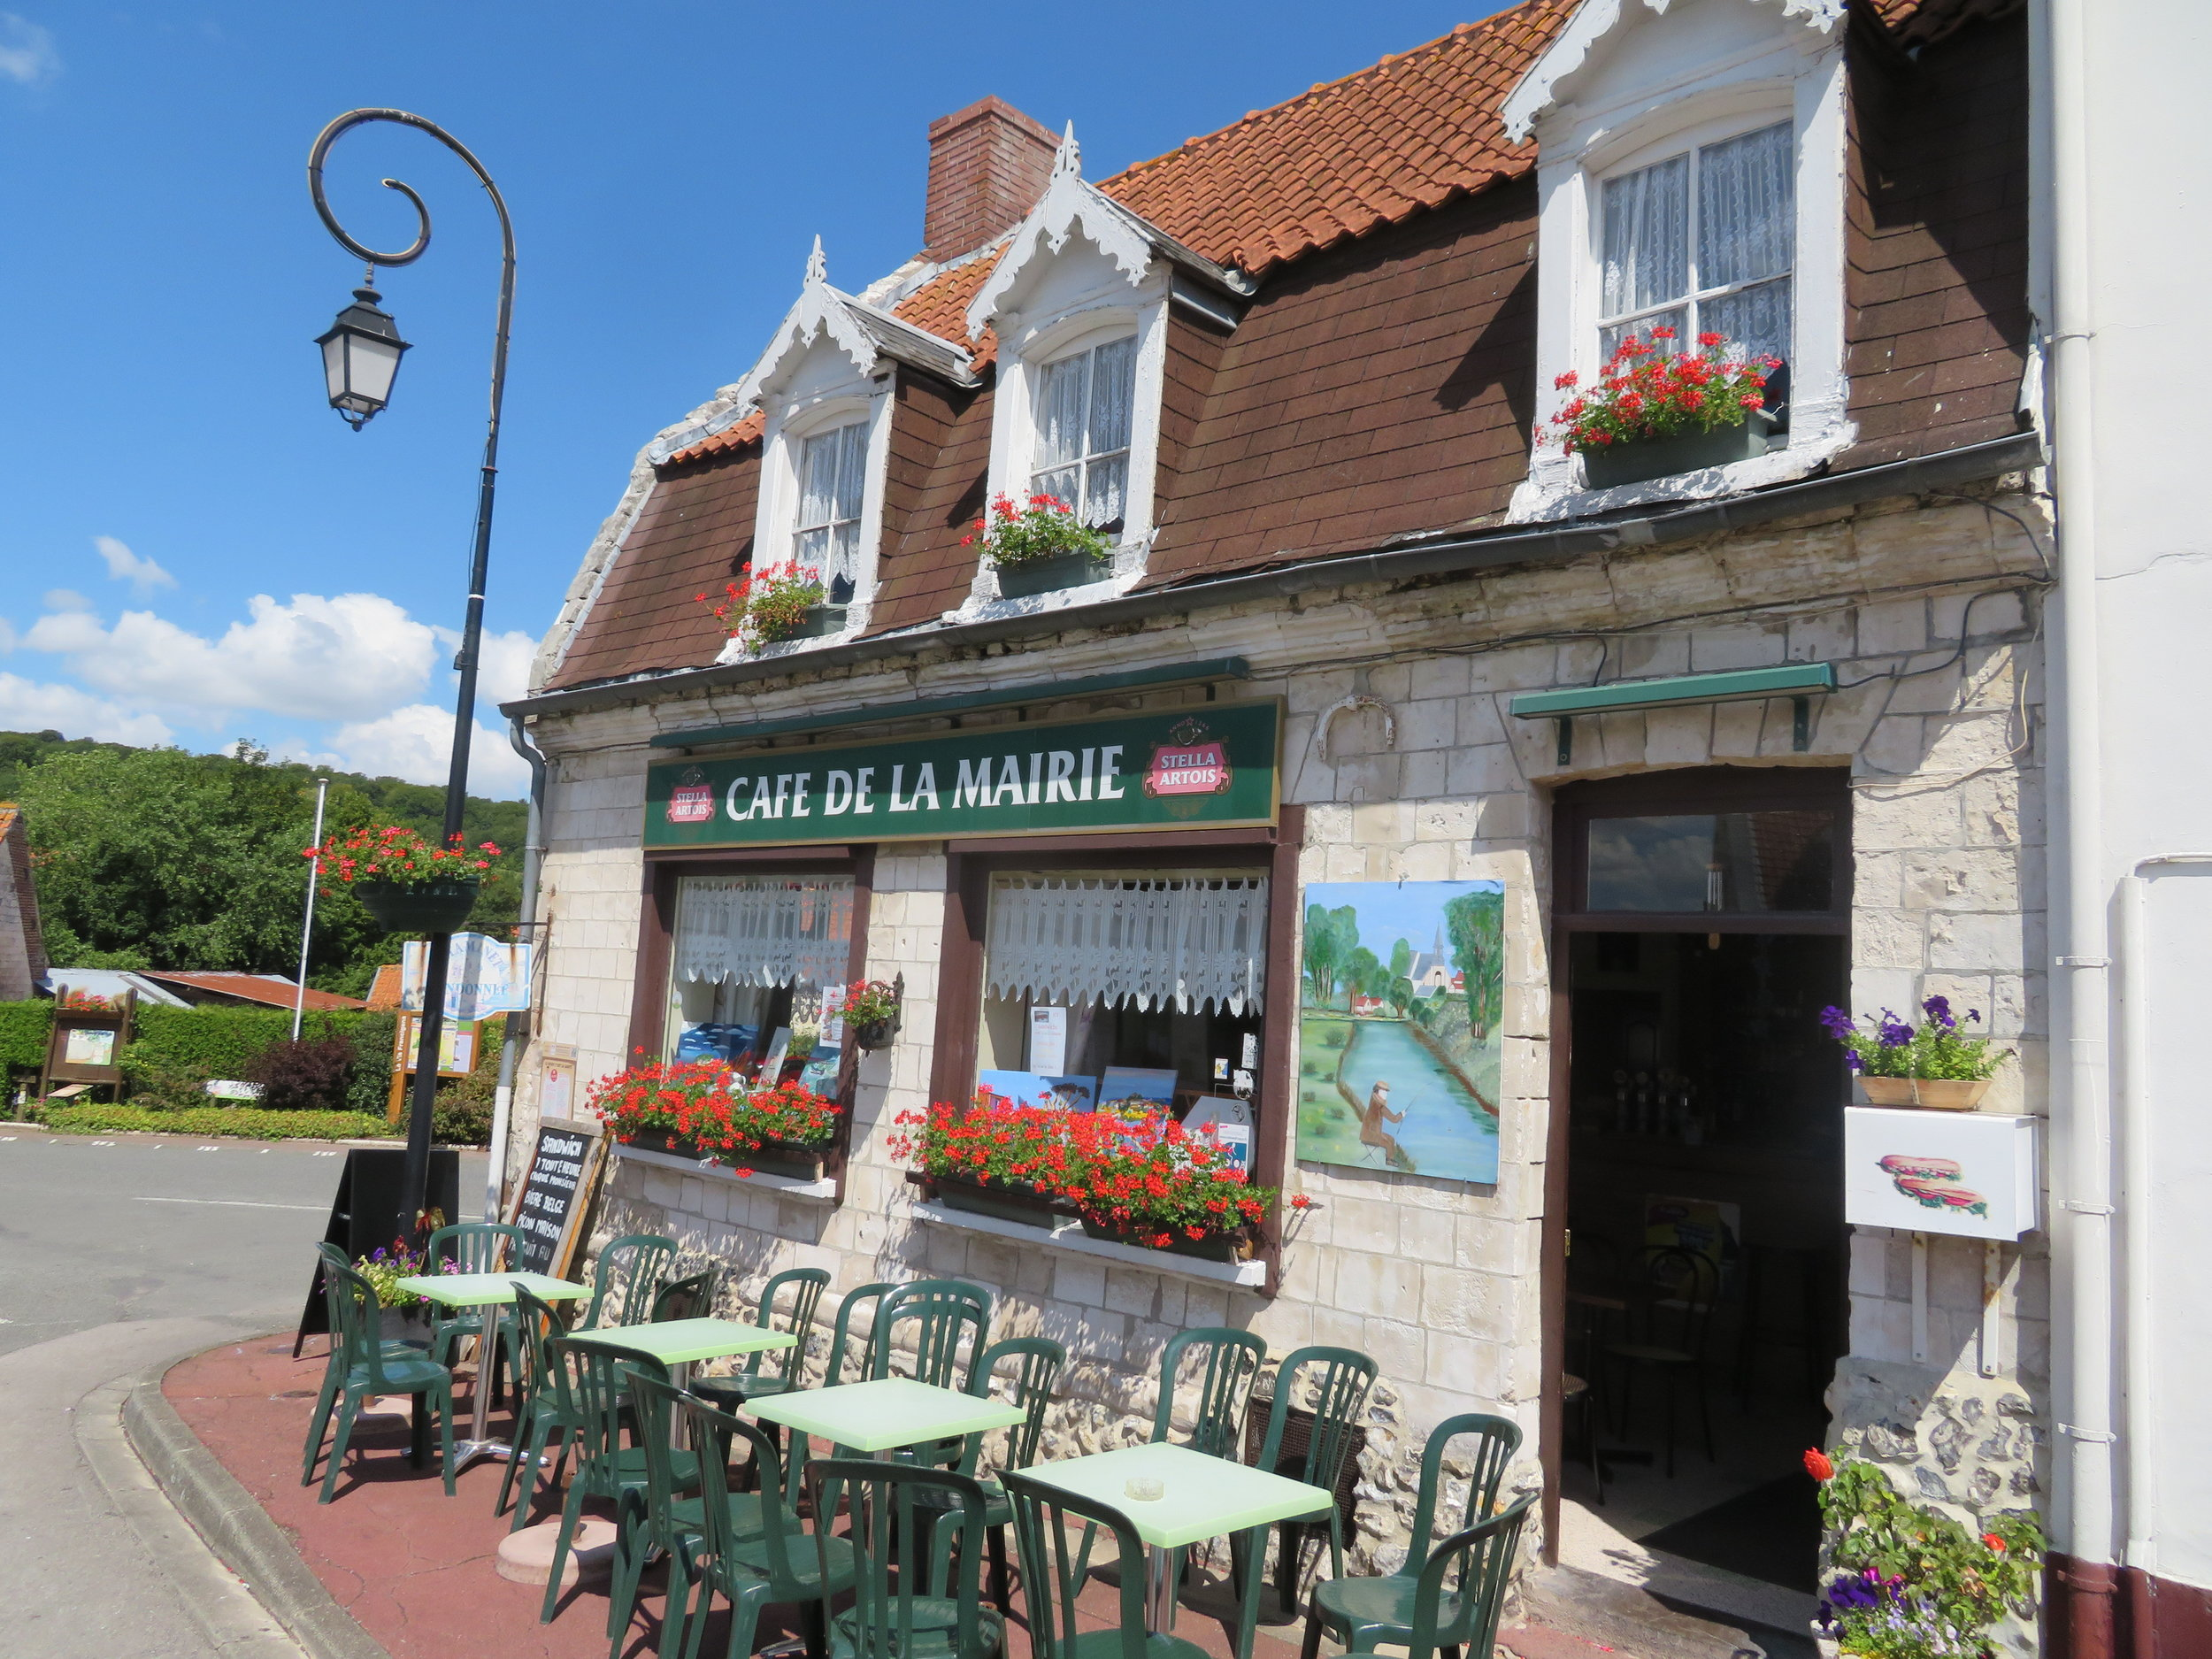 We found Cafe de la Maire open and inviting.